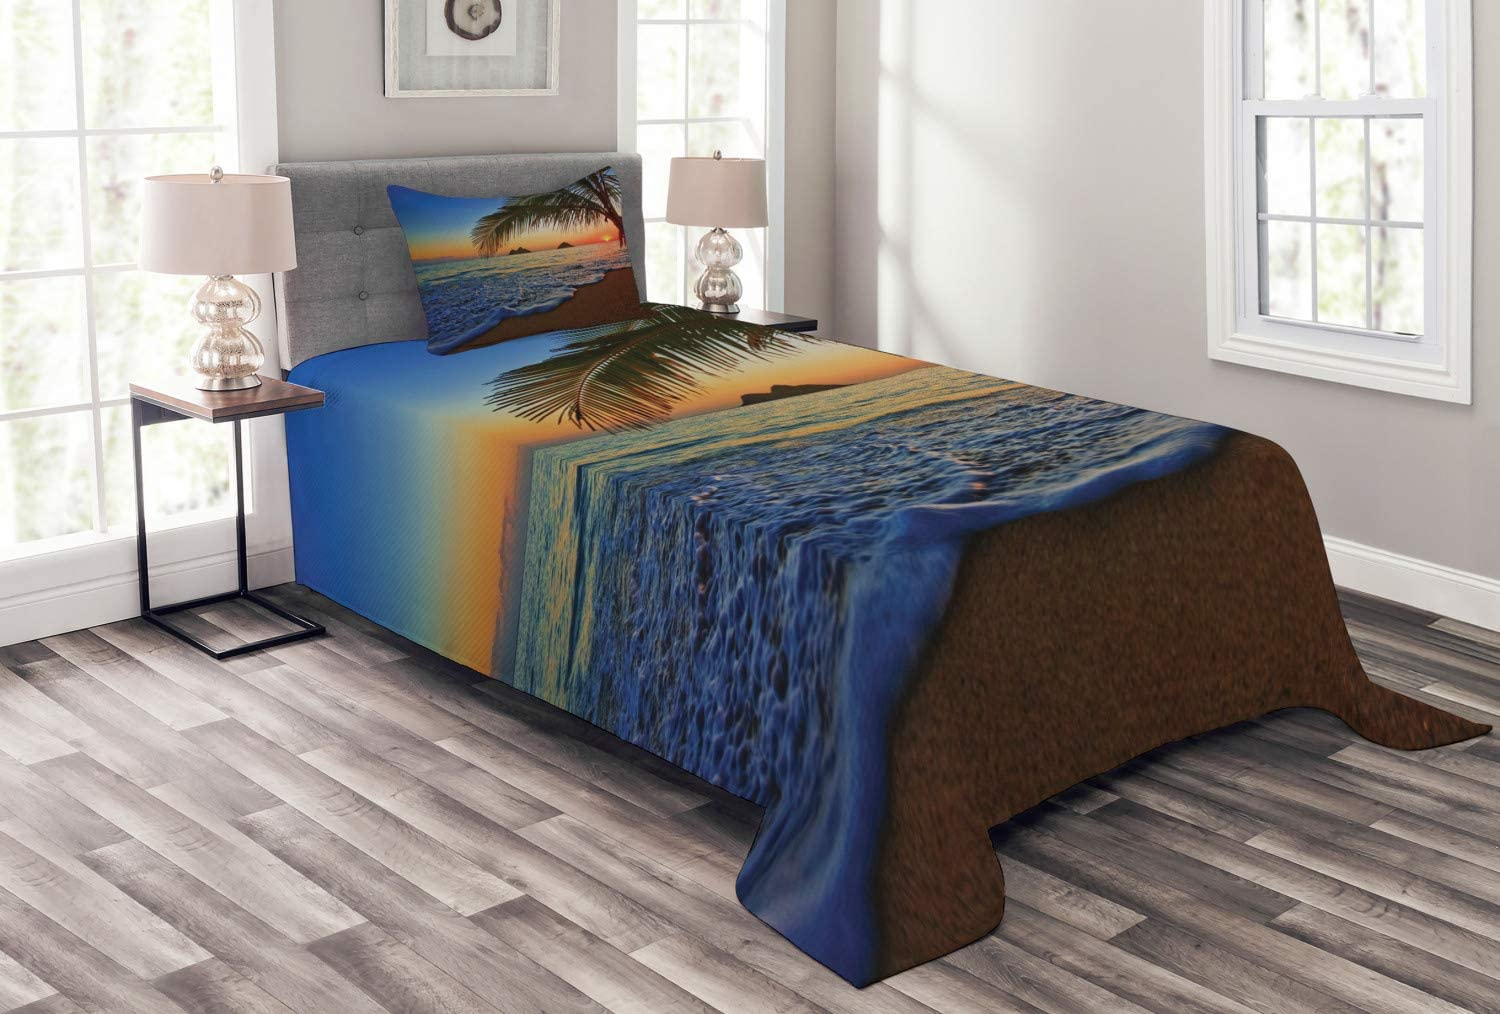 Ambesonne Hawaiian Bedspread, Pacific Sunrise at Lanikai Beach Hawaii Colorful Sky Wavy Ocean Surface Scene, Decorative Quilted 2 Piece Coverlet Set with Pillow Sham, Twin Size, Blue Ivory